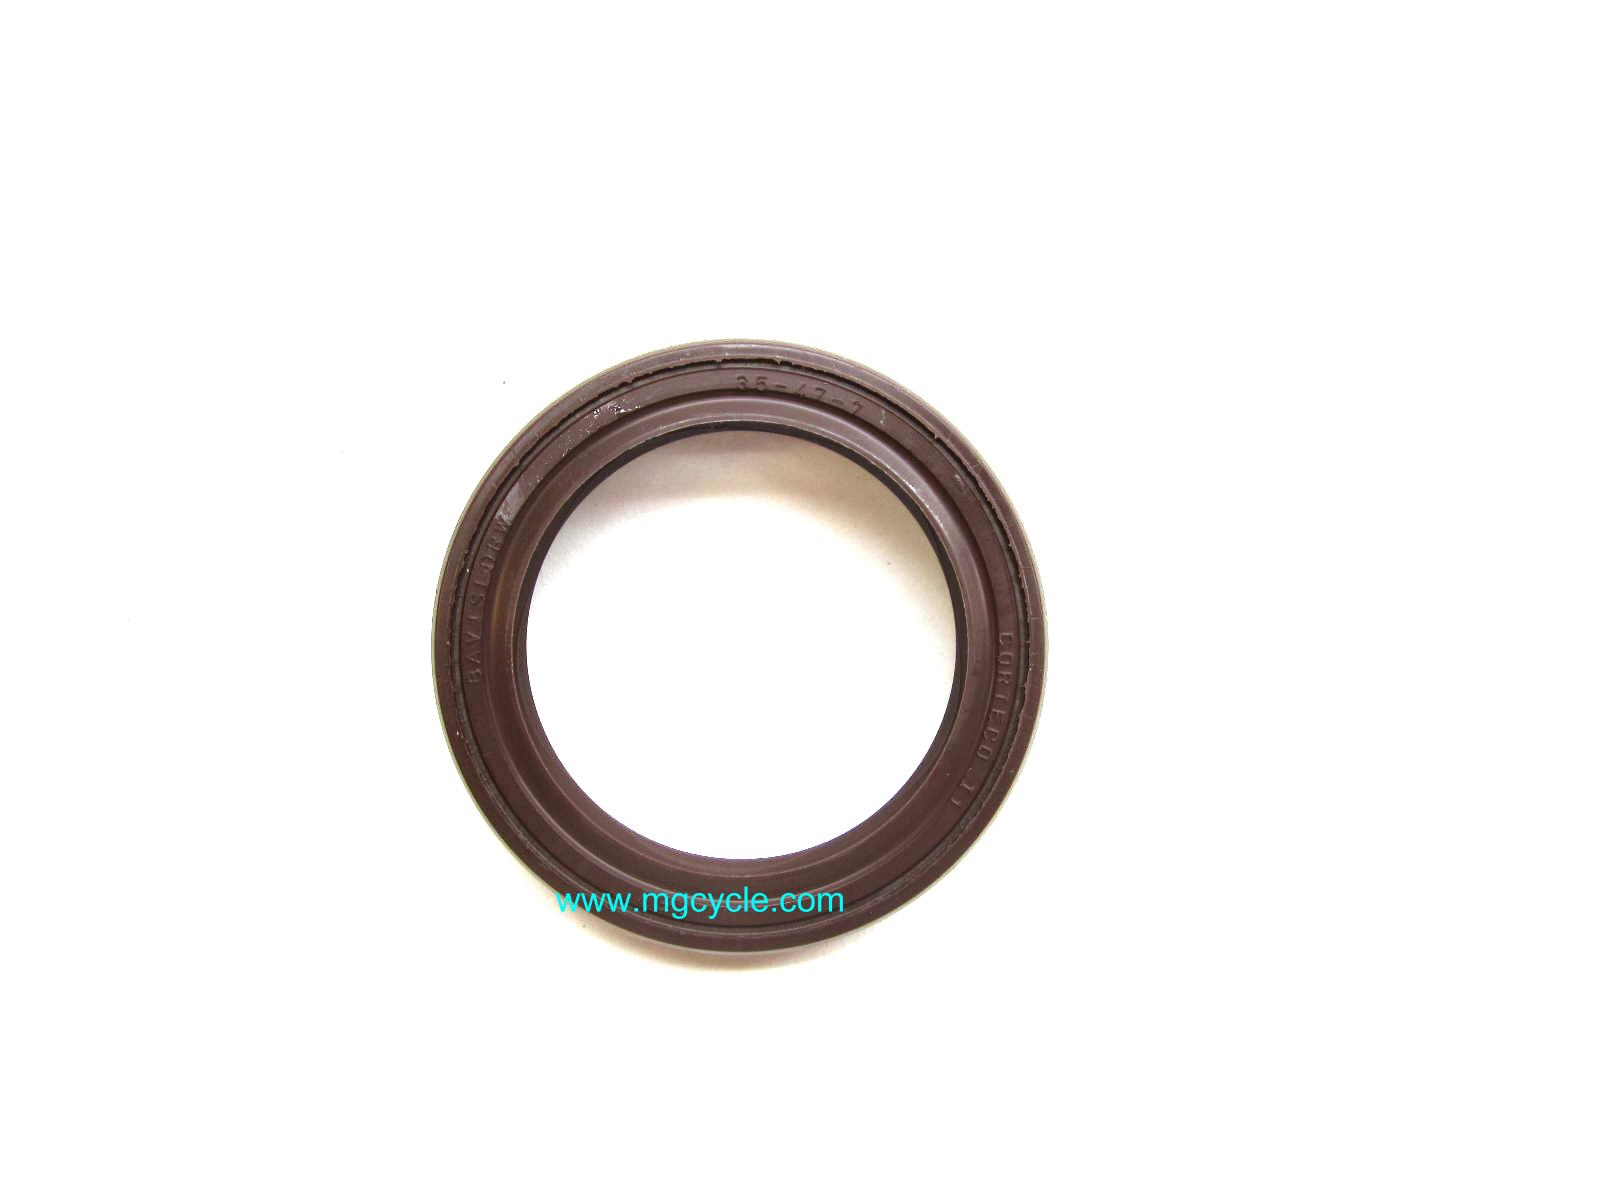 Big twin 5 speed trans input seal, double lip Viton GU90403548